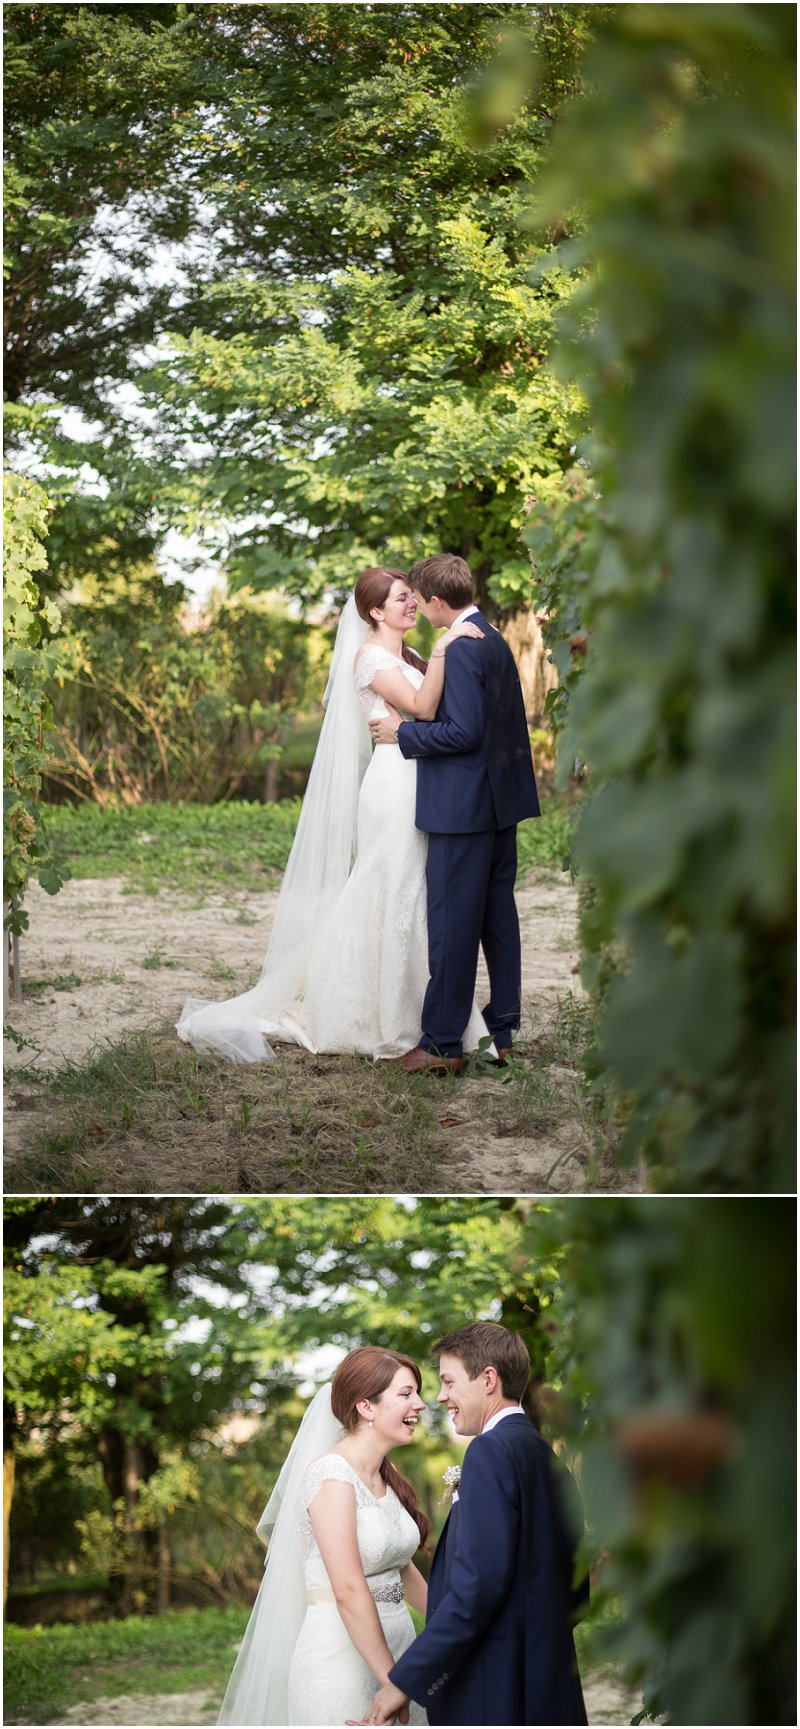 Bride and groom during portrait shoot in Vineyard, Italy